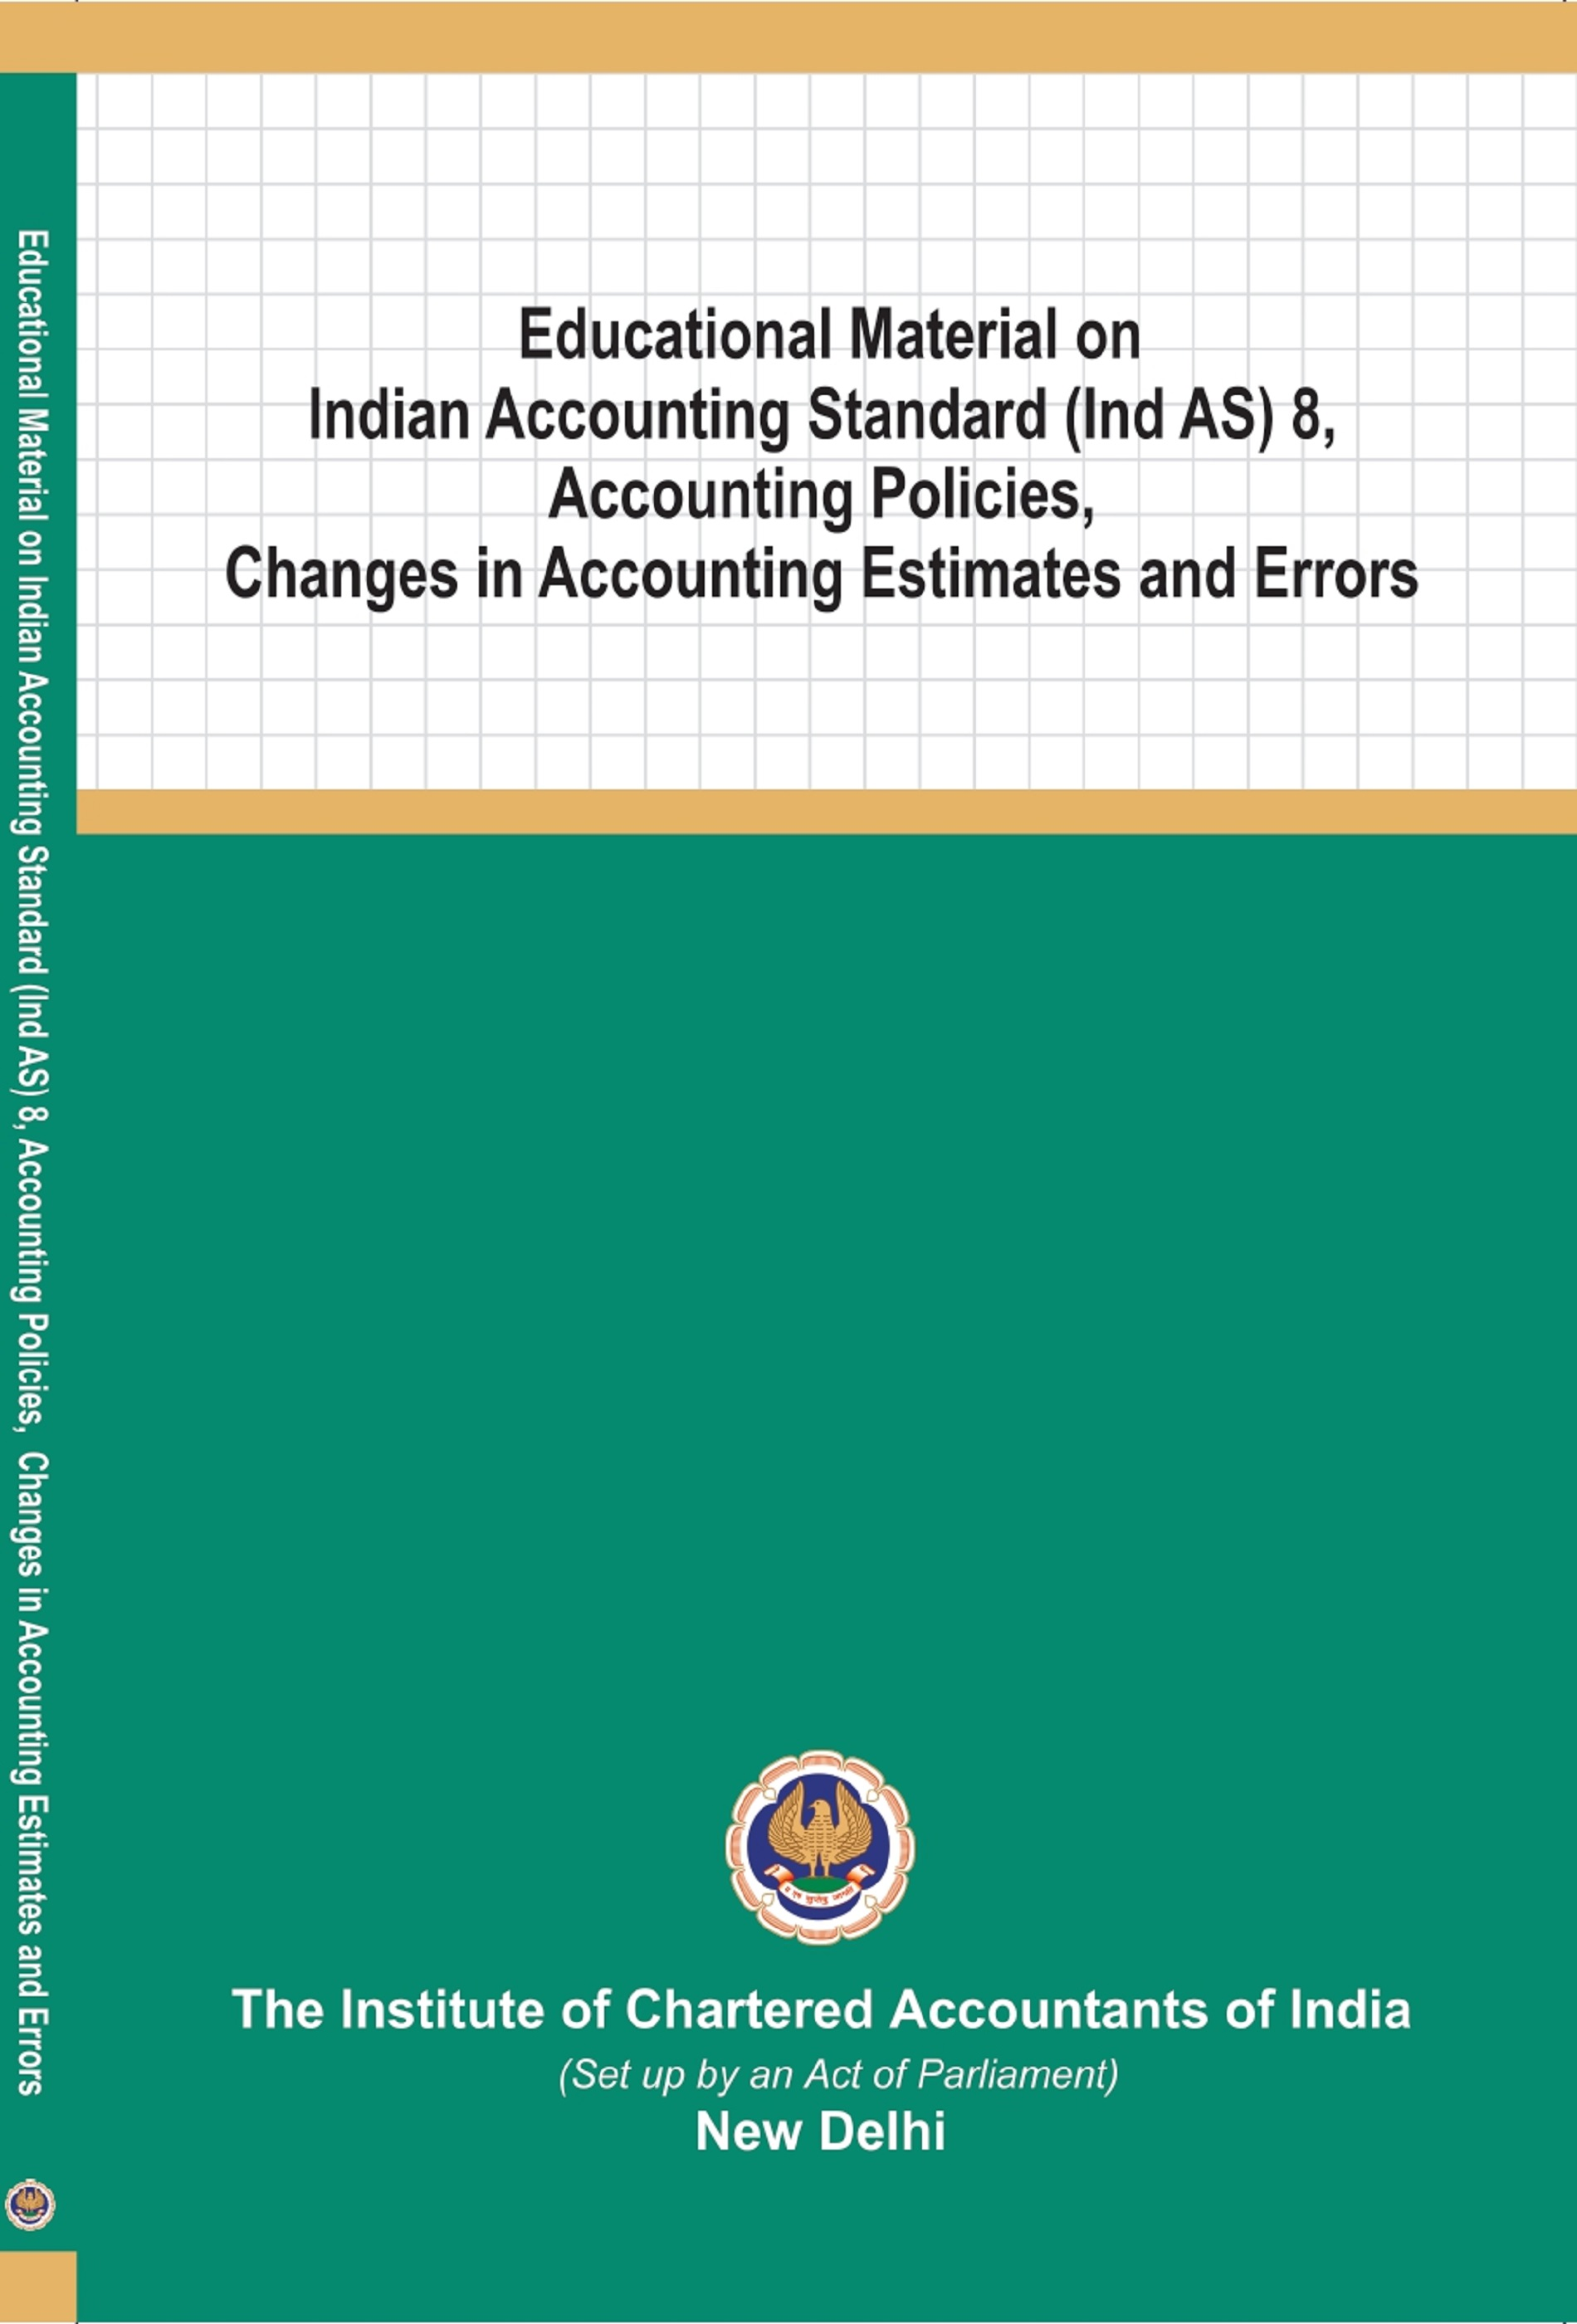 Educational Material on Indian Accounting Standard (Ind AS) 8, Accounting Policies, Changes in Accounting Estimates and Errors (July, 2019)